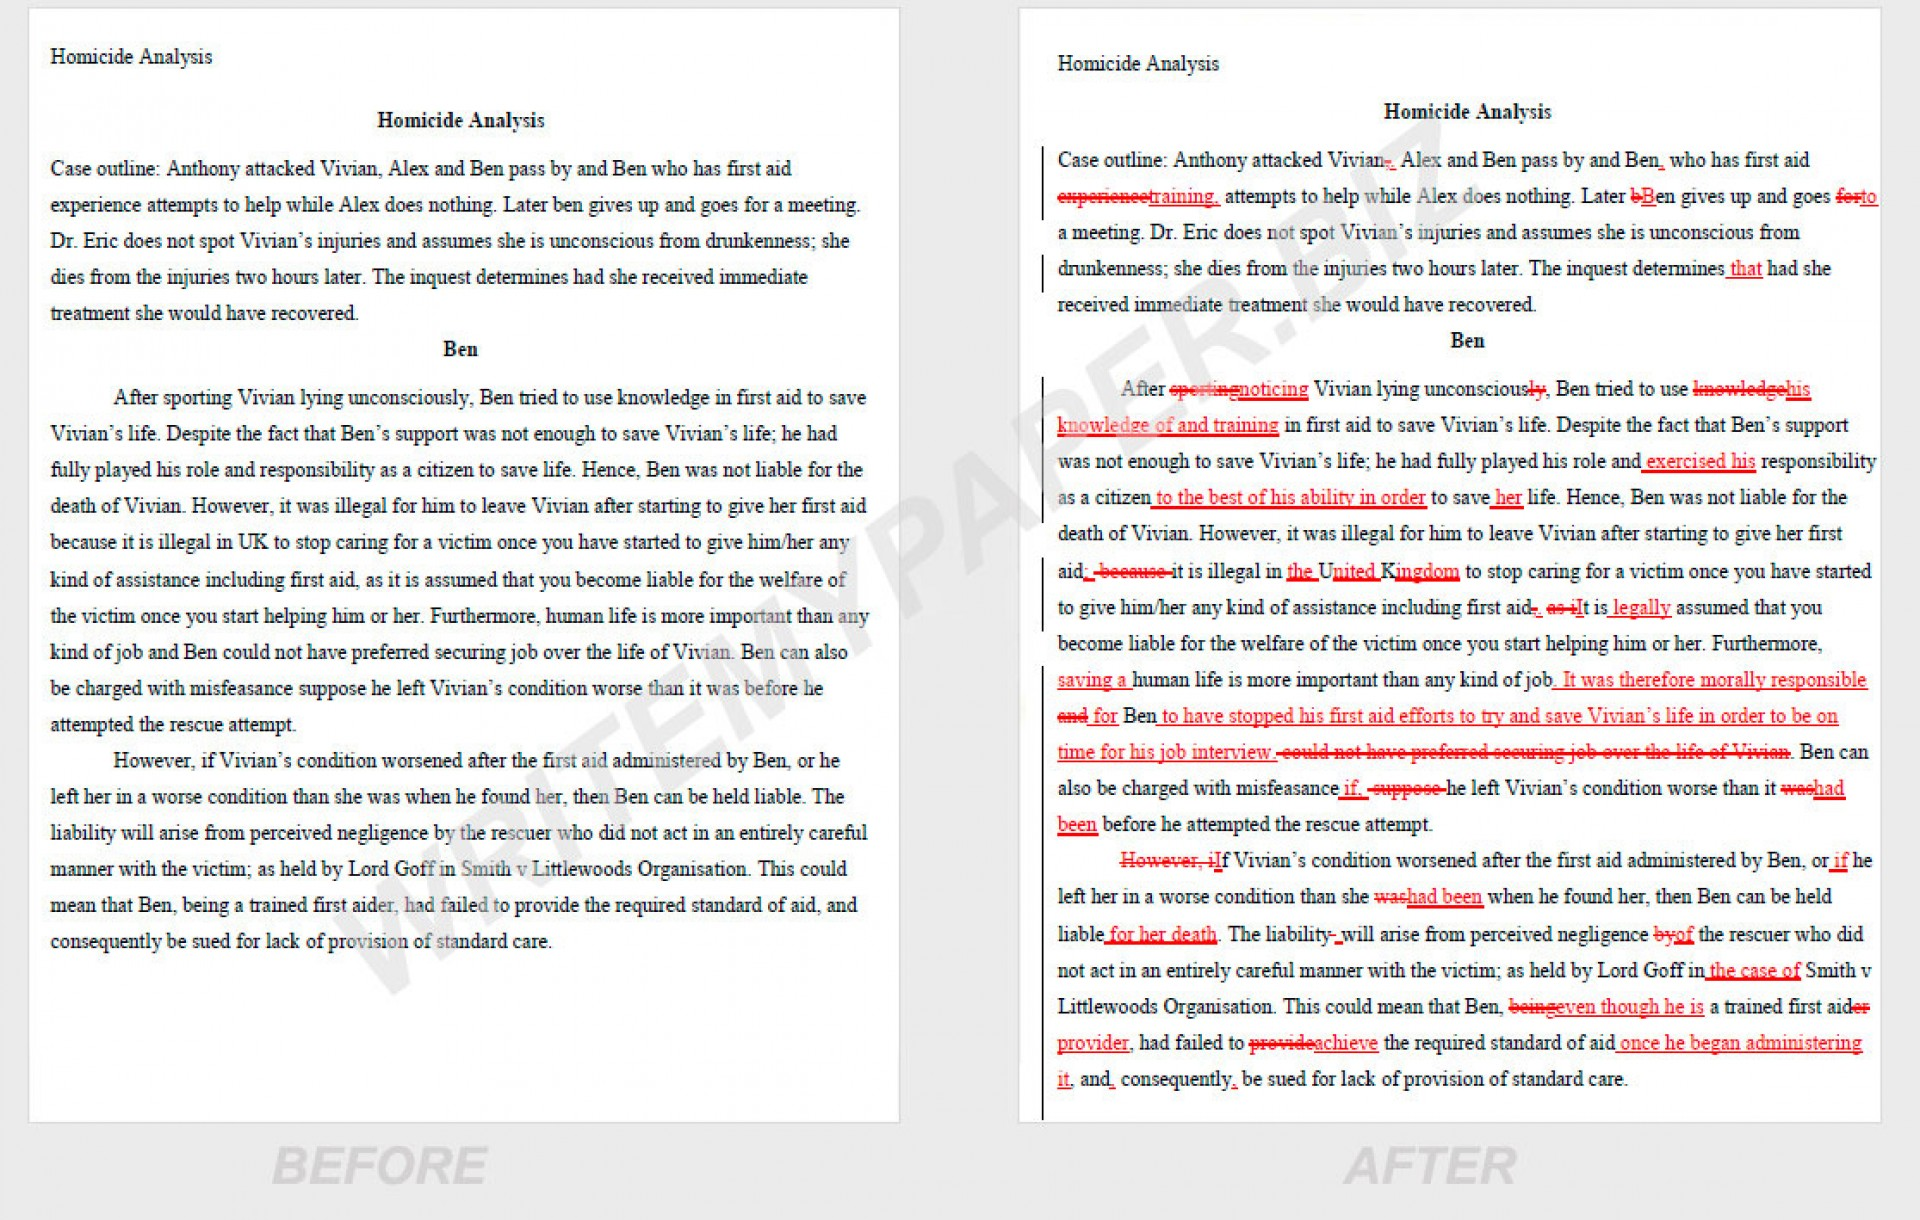 001 Essay Example Before After Proofread Remarkable My Promo Code Reviews Online For Free 1920